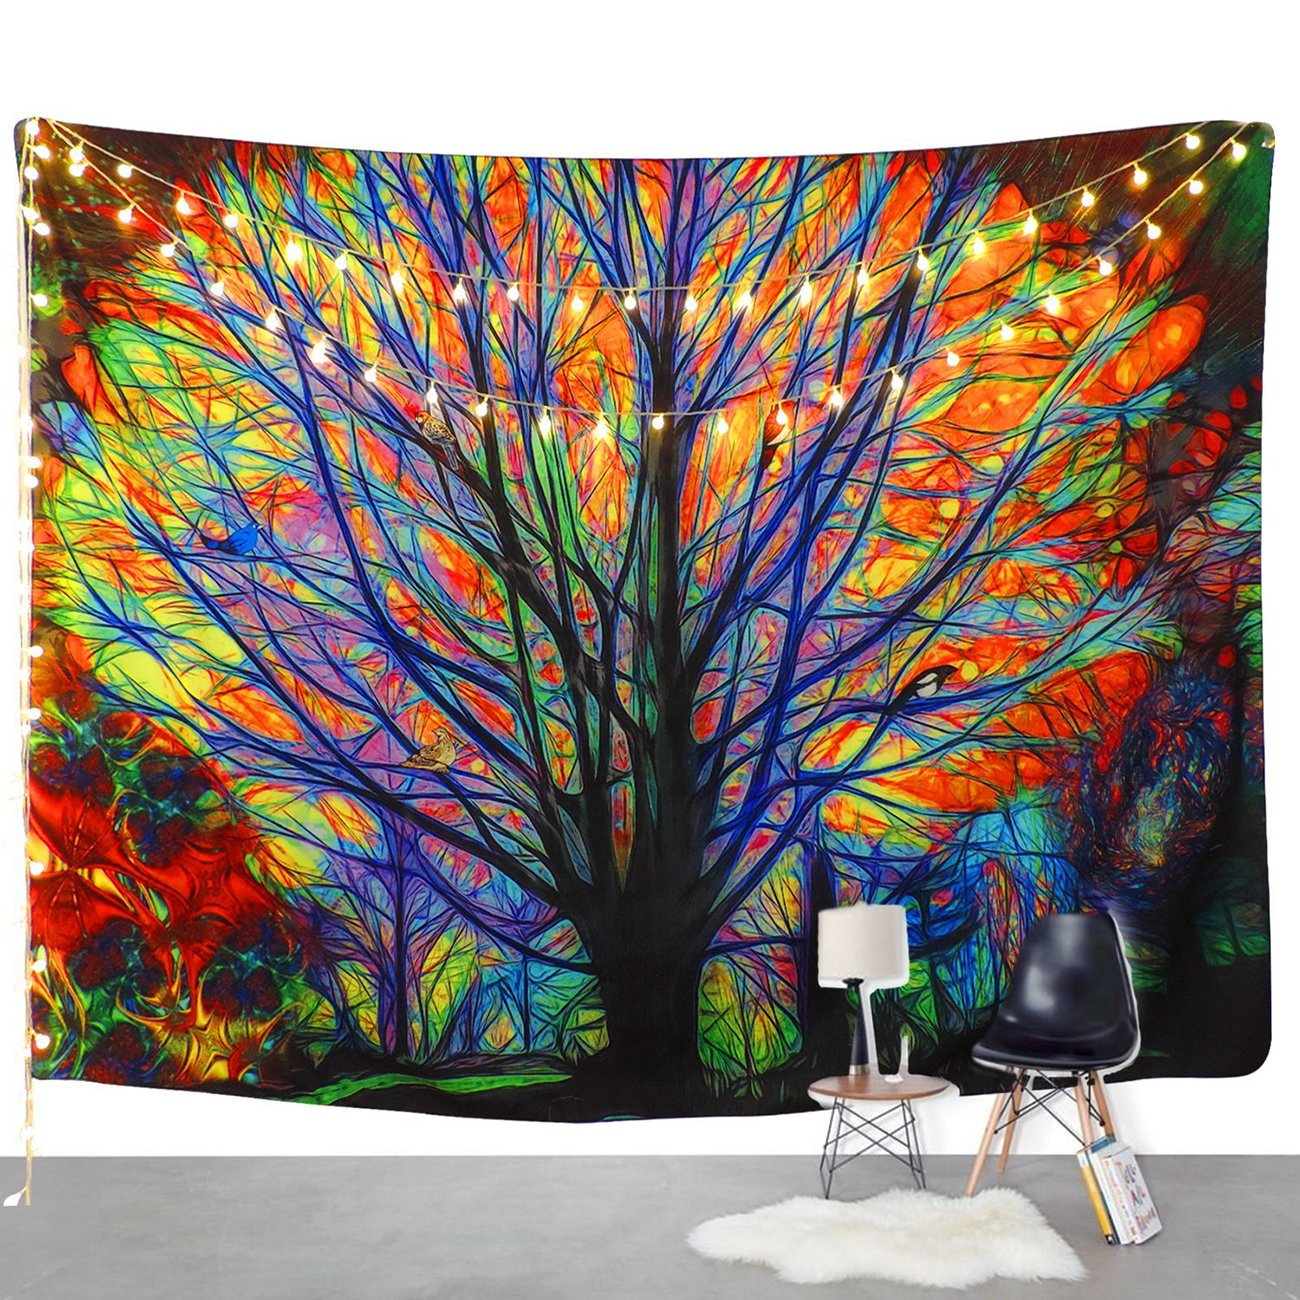 Amkun Colorful Tree Tapestry Wall Hanging Psychedelic Forest with Birds Mandala Hippie Bohemian Tapestry Wall Hanging , Wall Tapestry with Art Nature Home Decorations for Table Cloth ,Living Room, Bedroom Dorm Decor (Tree, 51.2